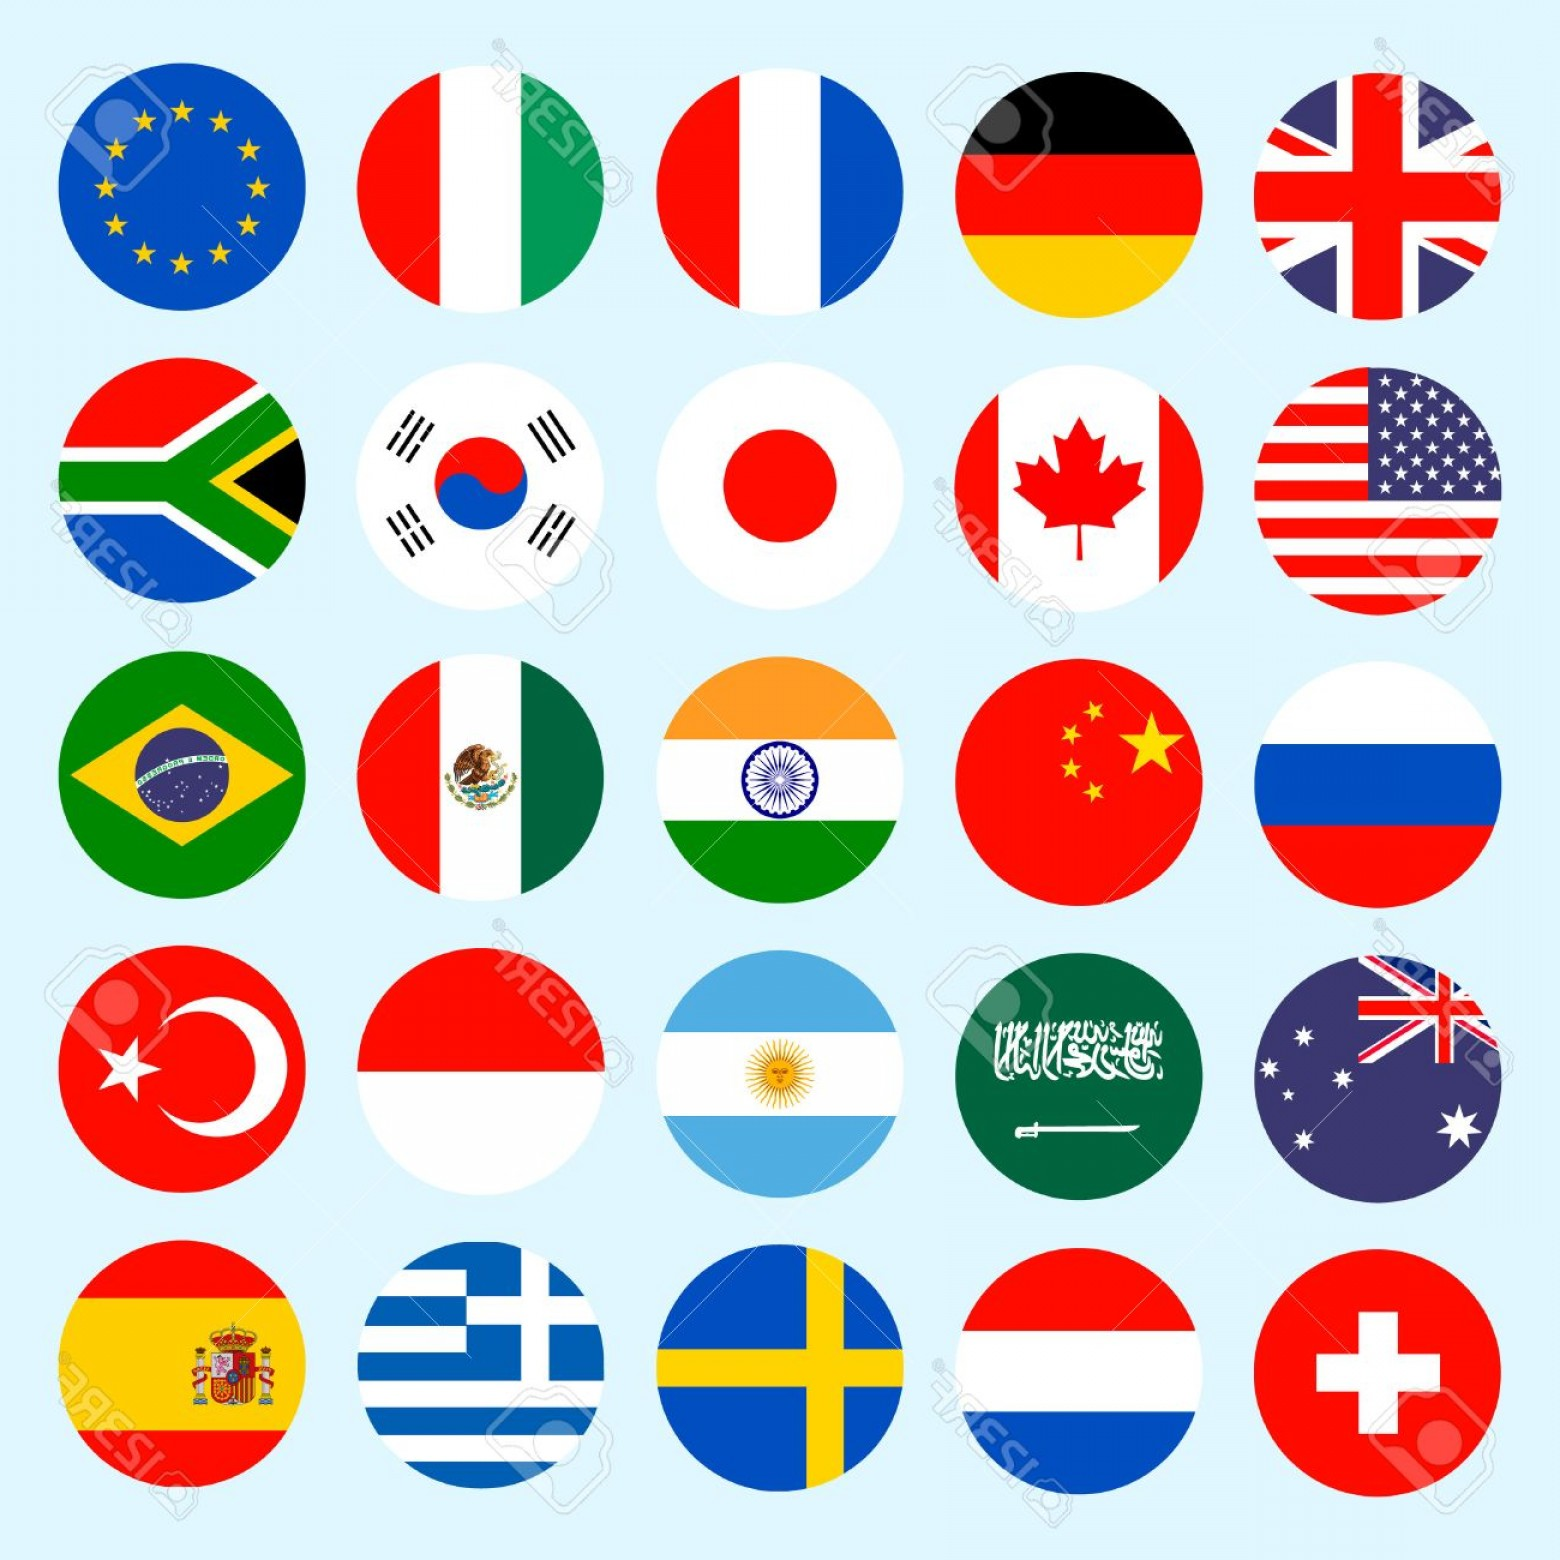 World Icon Vector Simple: Photostock Vector Circle Flags Vector Of The World Flags Icons In Flat Style Simple Vector Flags Of The Countries